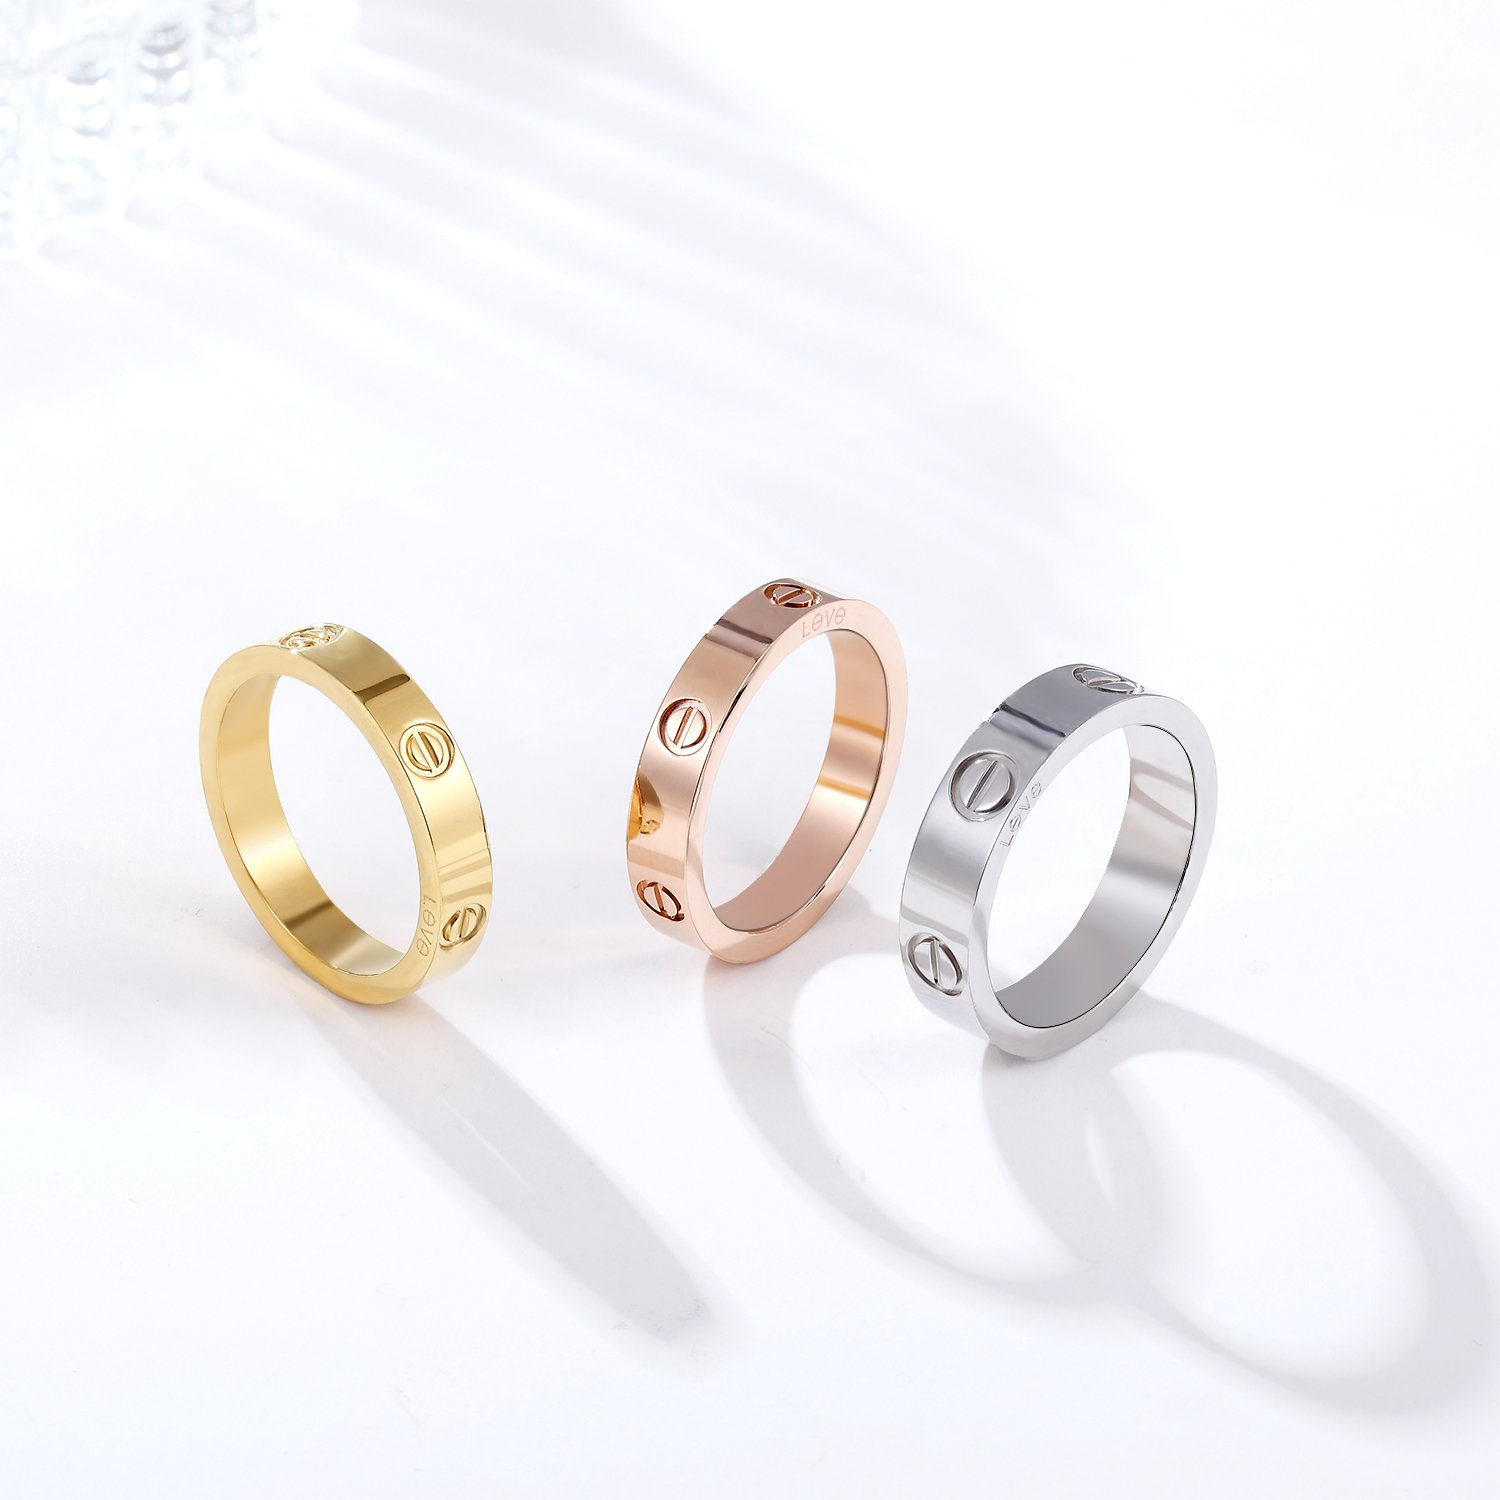 Z.RACLE 4mm Love Rings for women with Screw Design Best Gifts for love Sliver - 7 by Z.RACLE (Image #3)